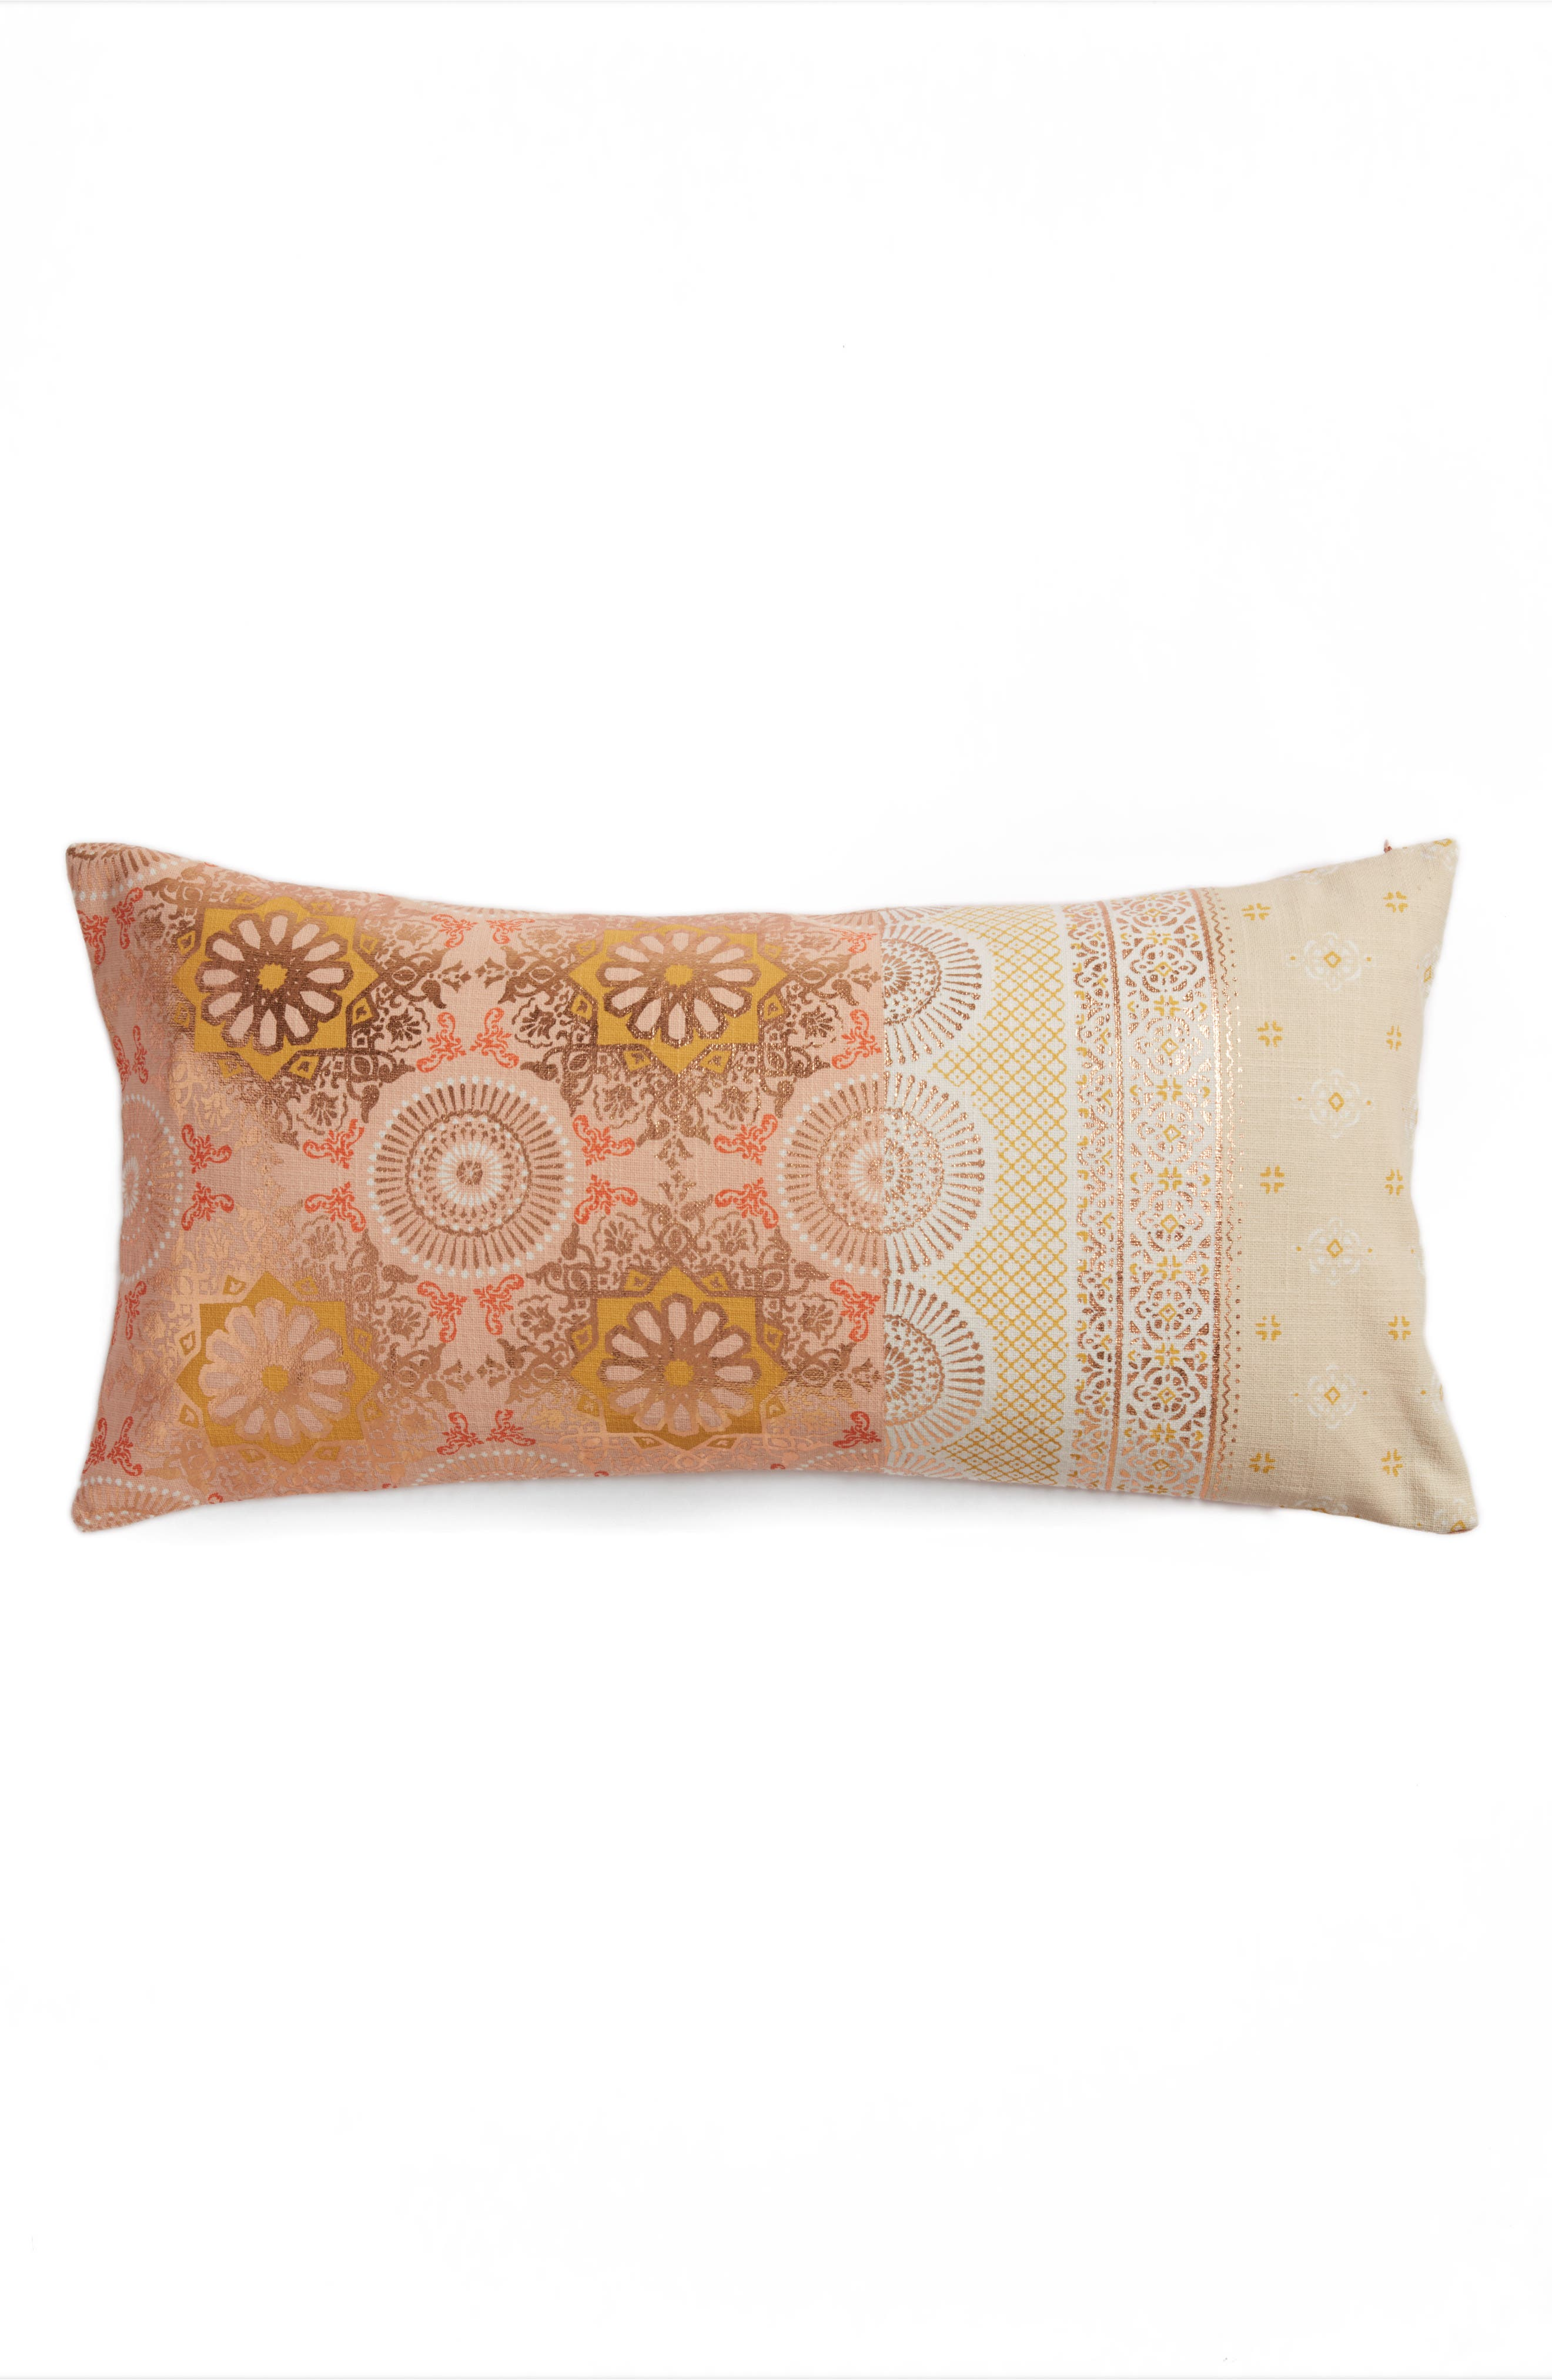 Moroccan Print Accent Pillow,                         Main,                         color, 650